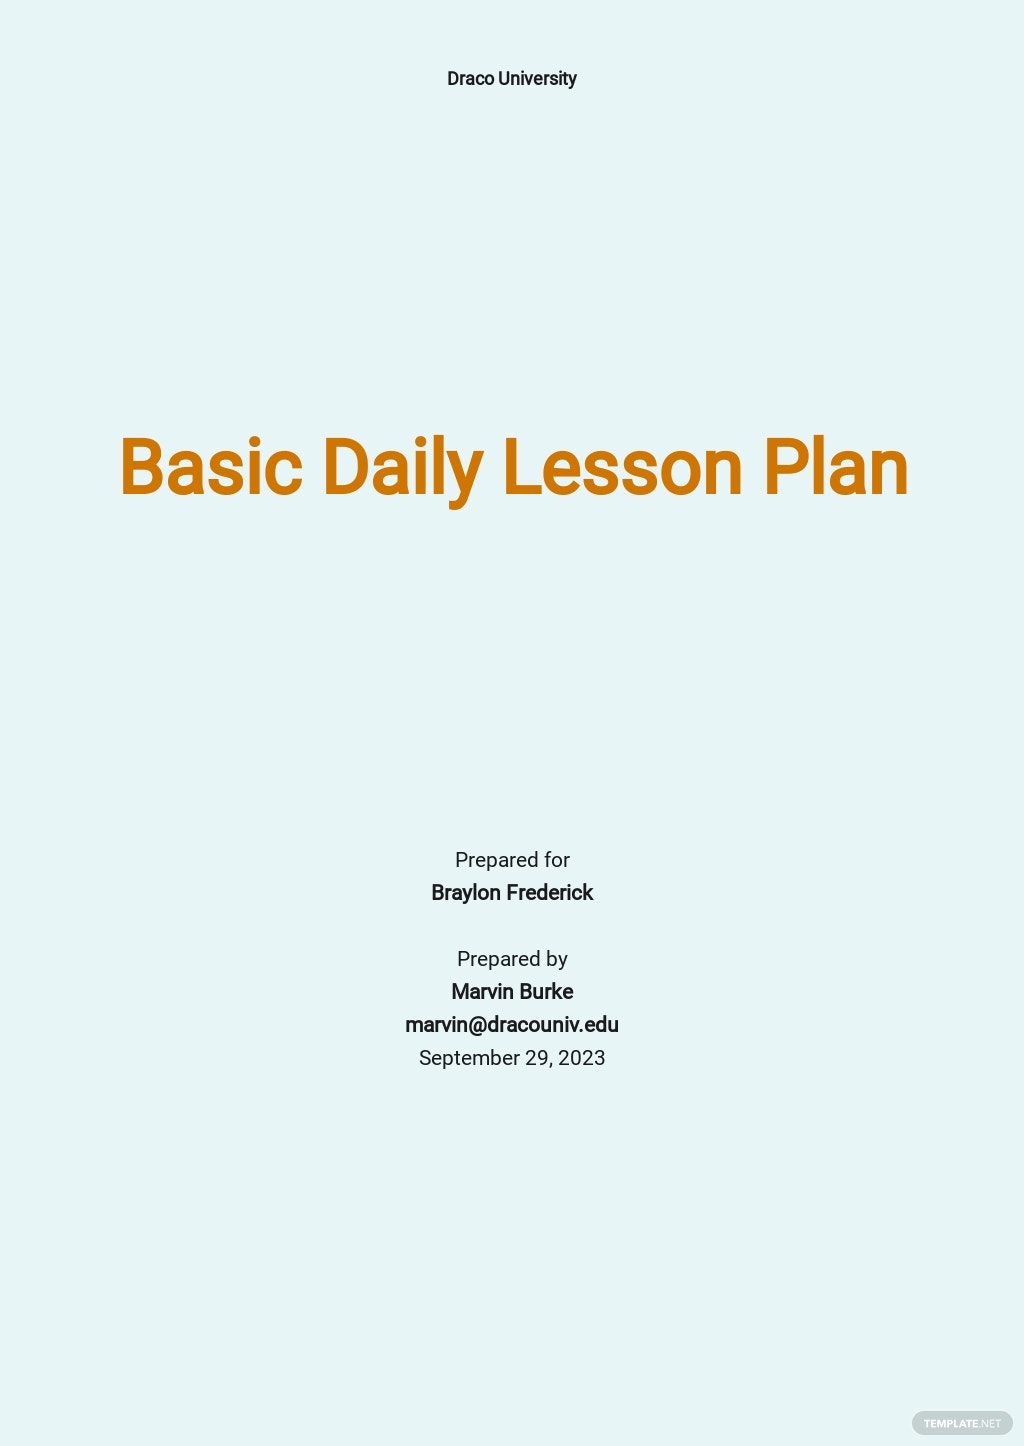 Basic Daily Lesson Plan Template.jpe